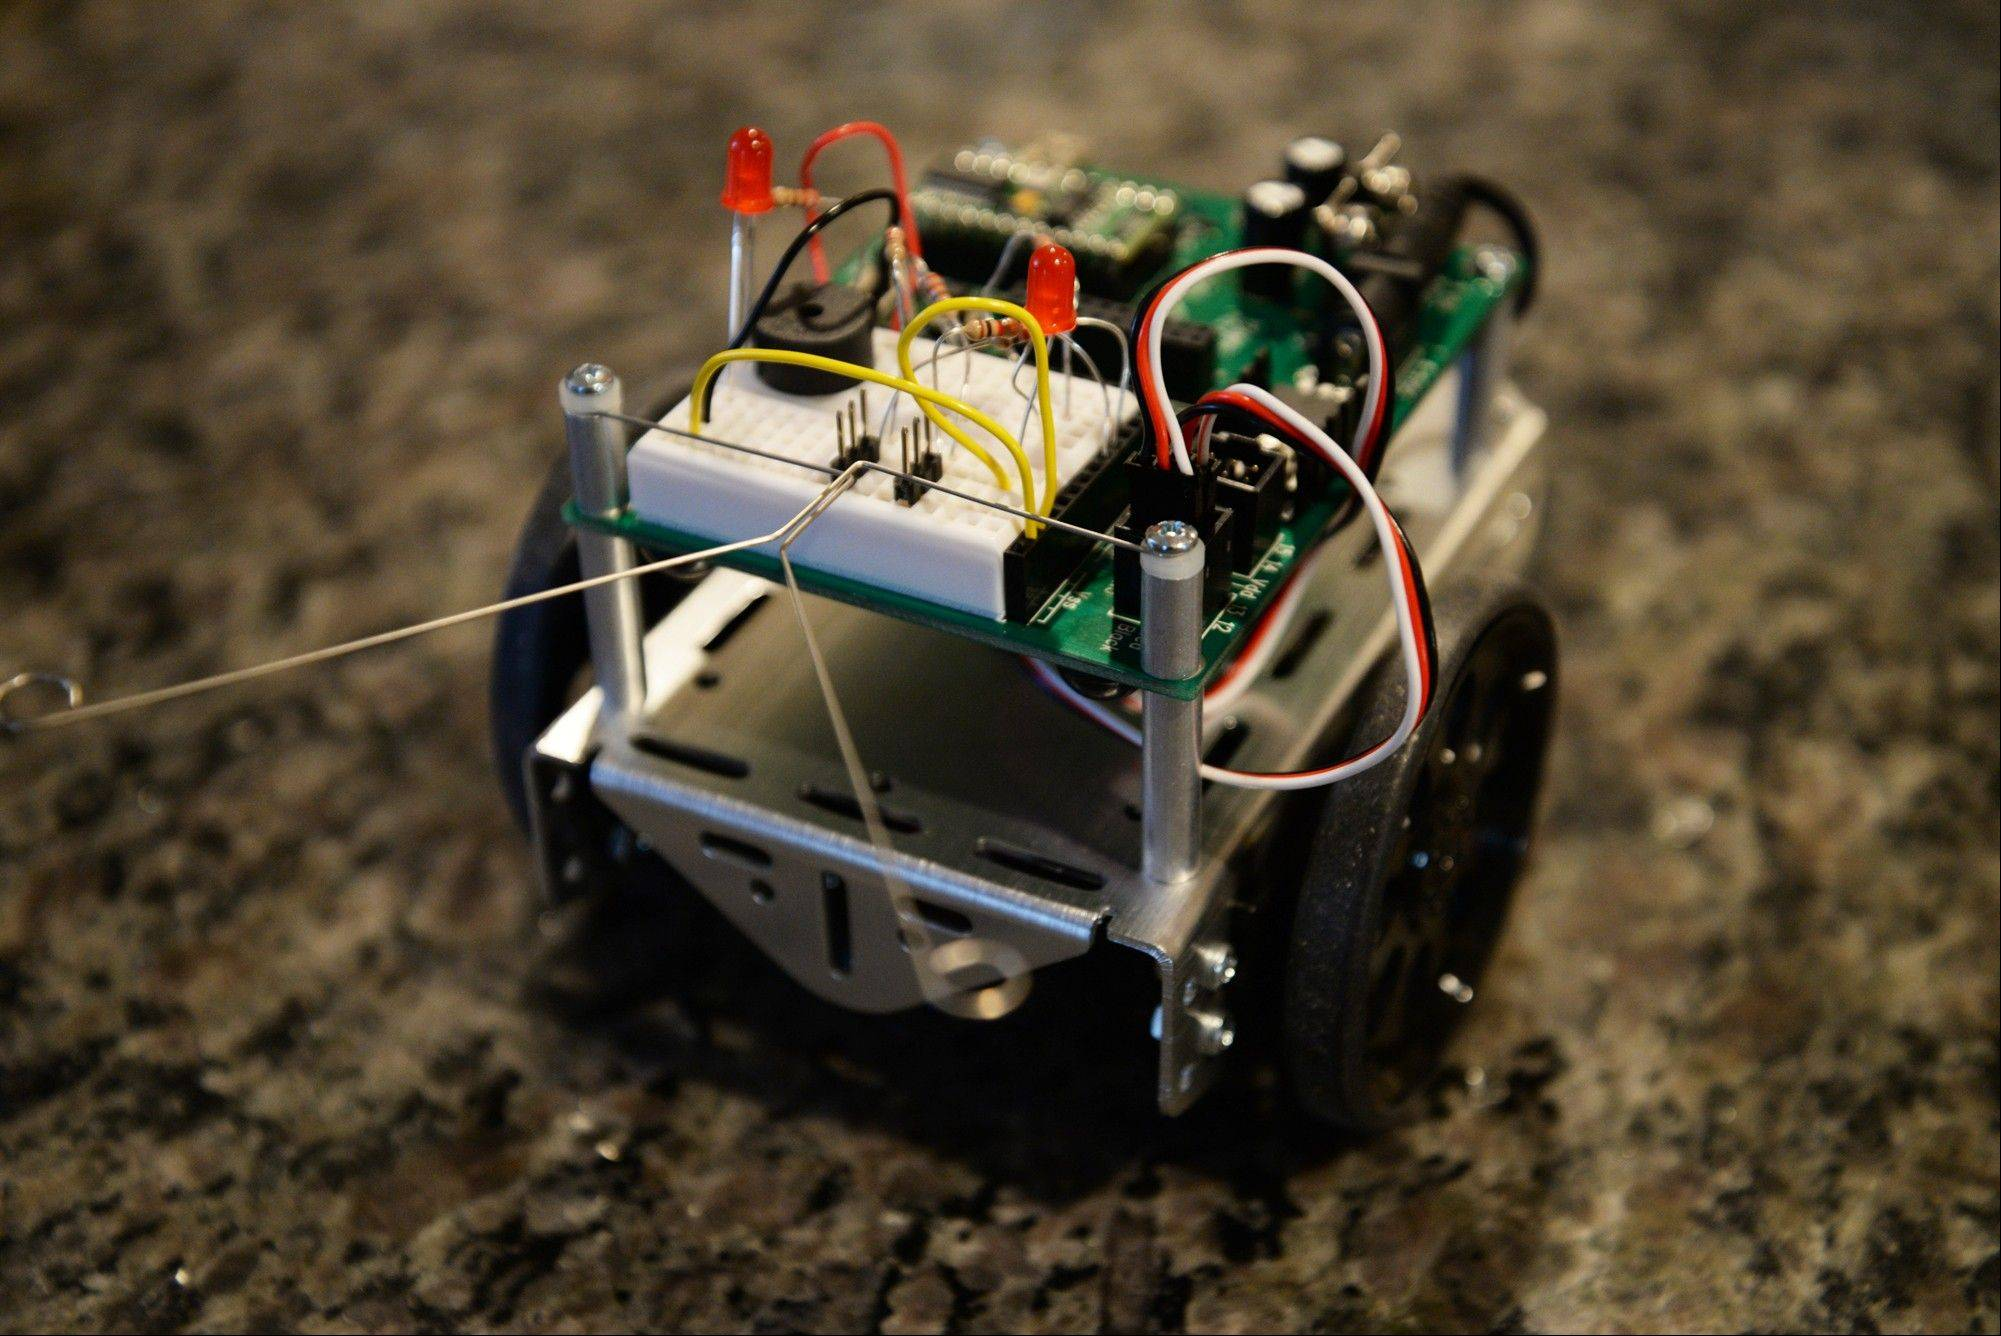 The Parallax Boe-Bot programmable robot must be built from scratch and uses tactile feelers and infrared technology to sense object in its path.